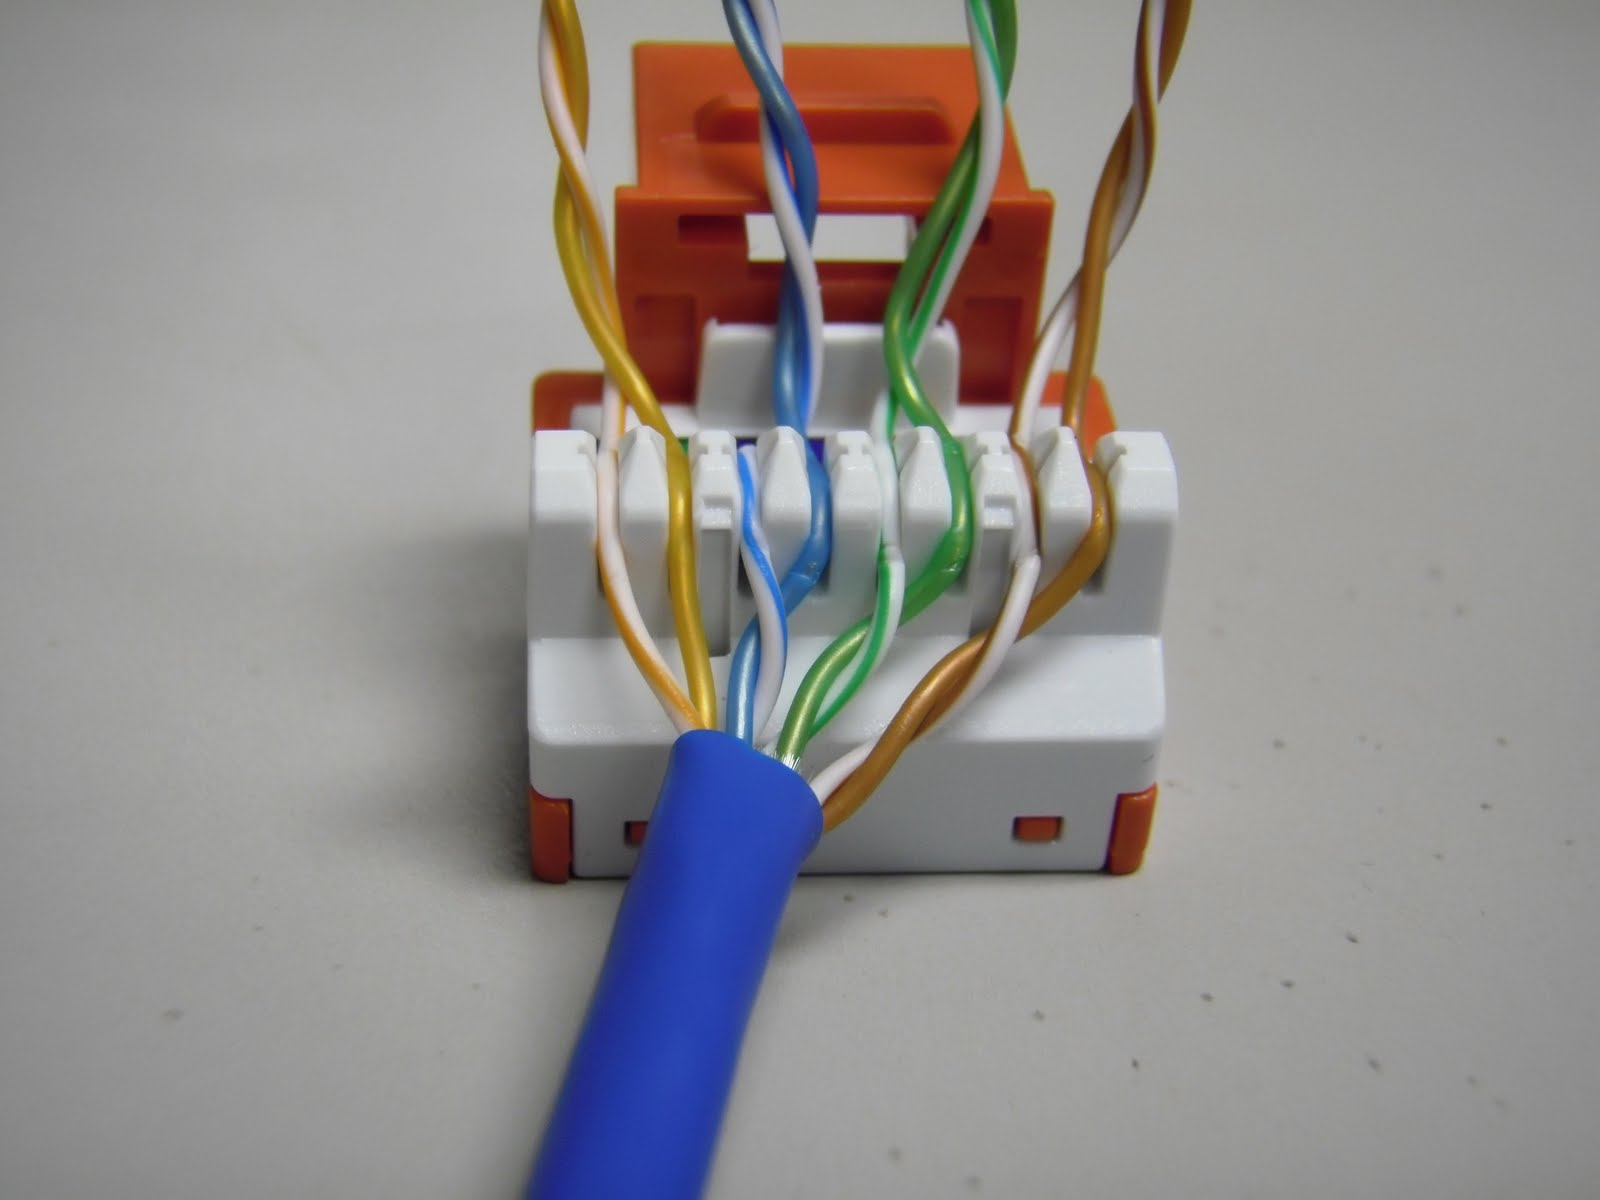 cat5e keystone jack wiring wiring diagram mega cat 5 keystone jack wiring color diagrams [ 1600 x 1200 Pixel ]